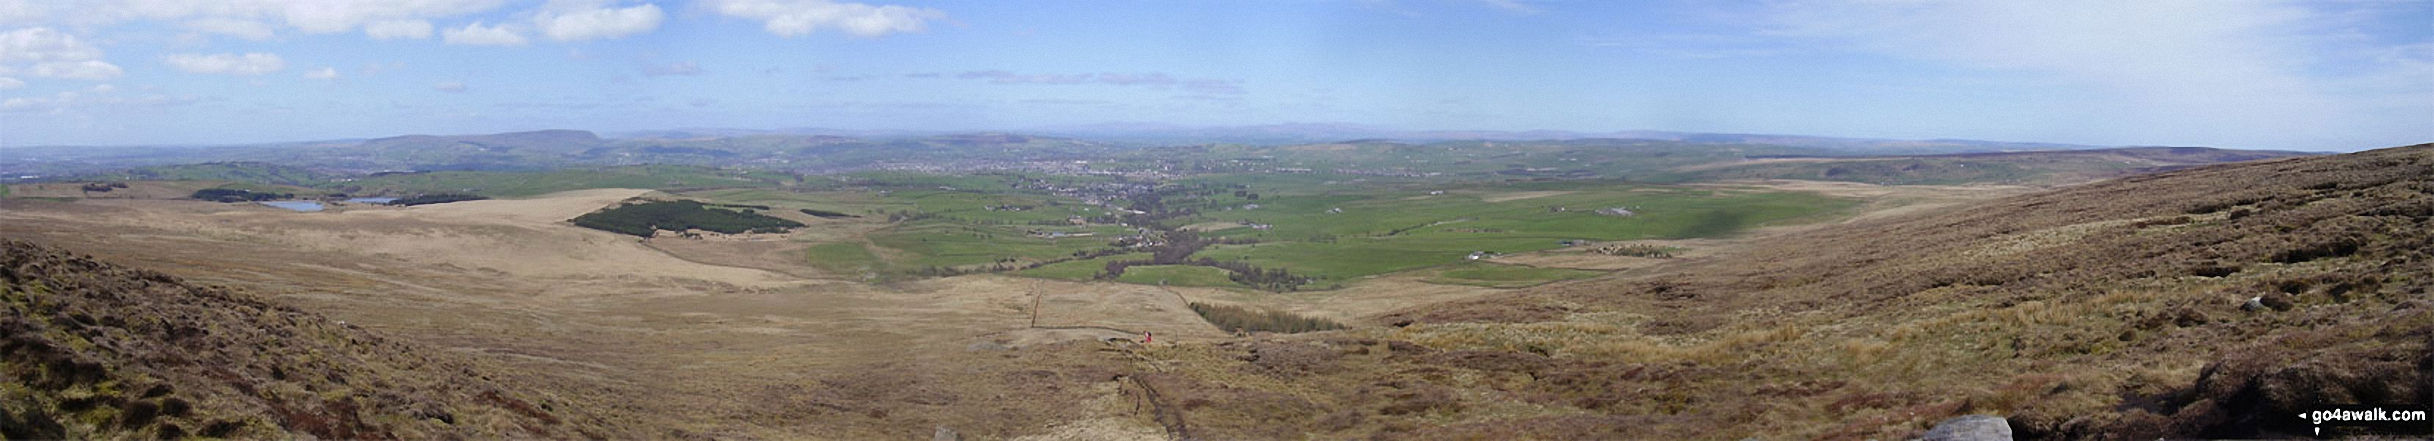 The view looking North from the summit of Lad Law (Boulsworth Hill)